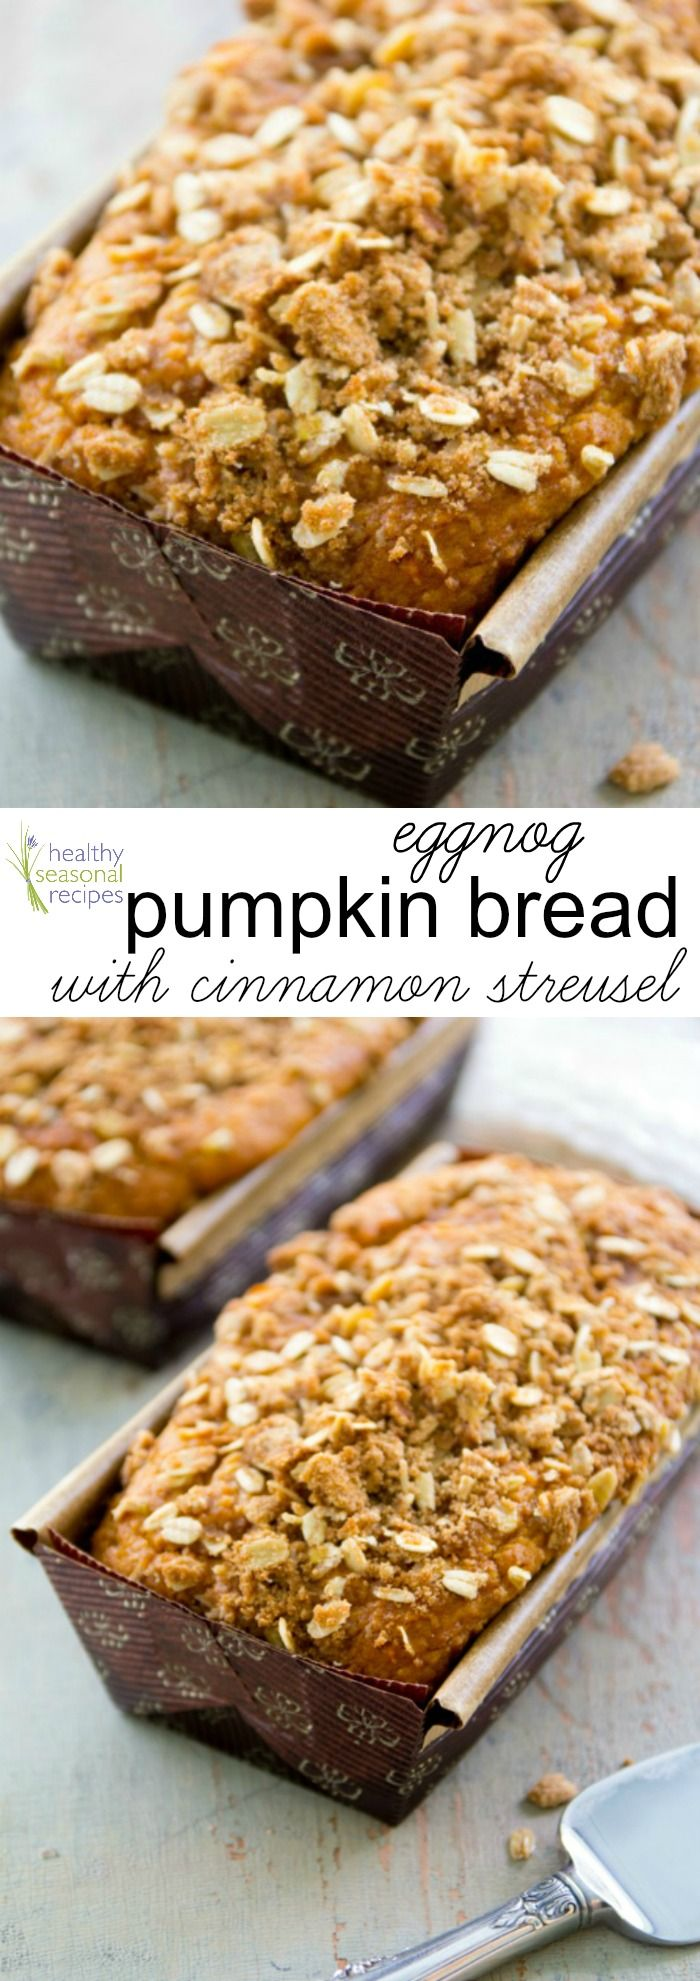 Eggnog Pumpkin Bread | This home-baked gift from the kitchen is perfect for Christmas visits! @healthyseasonal